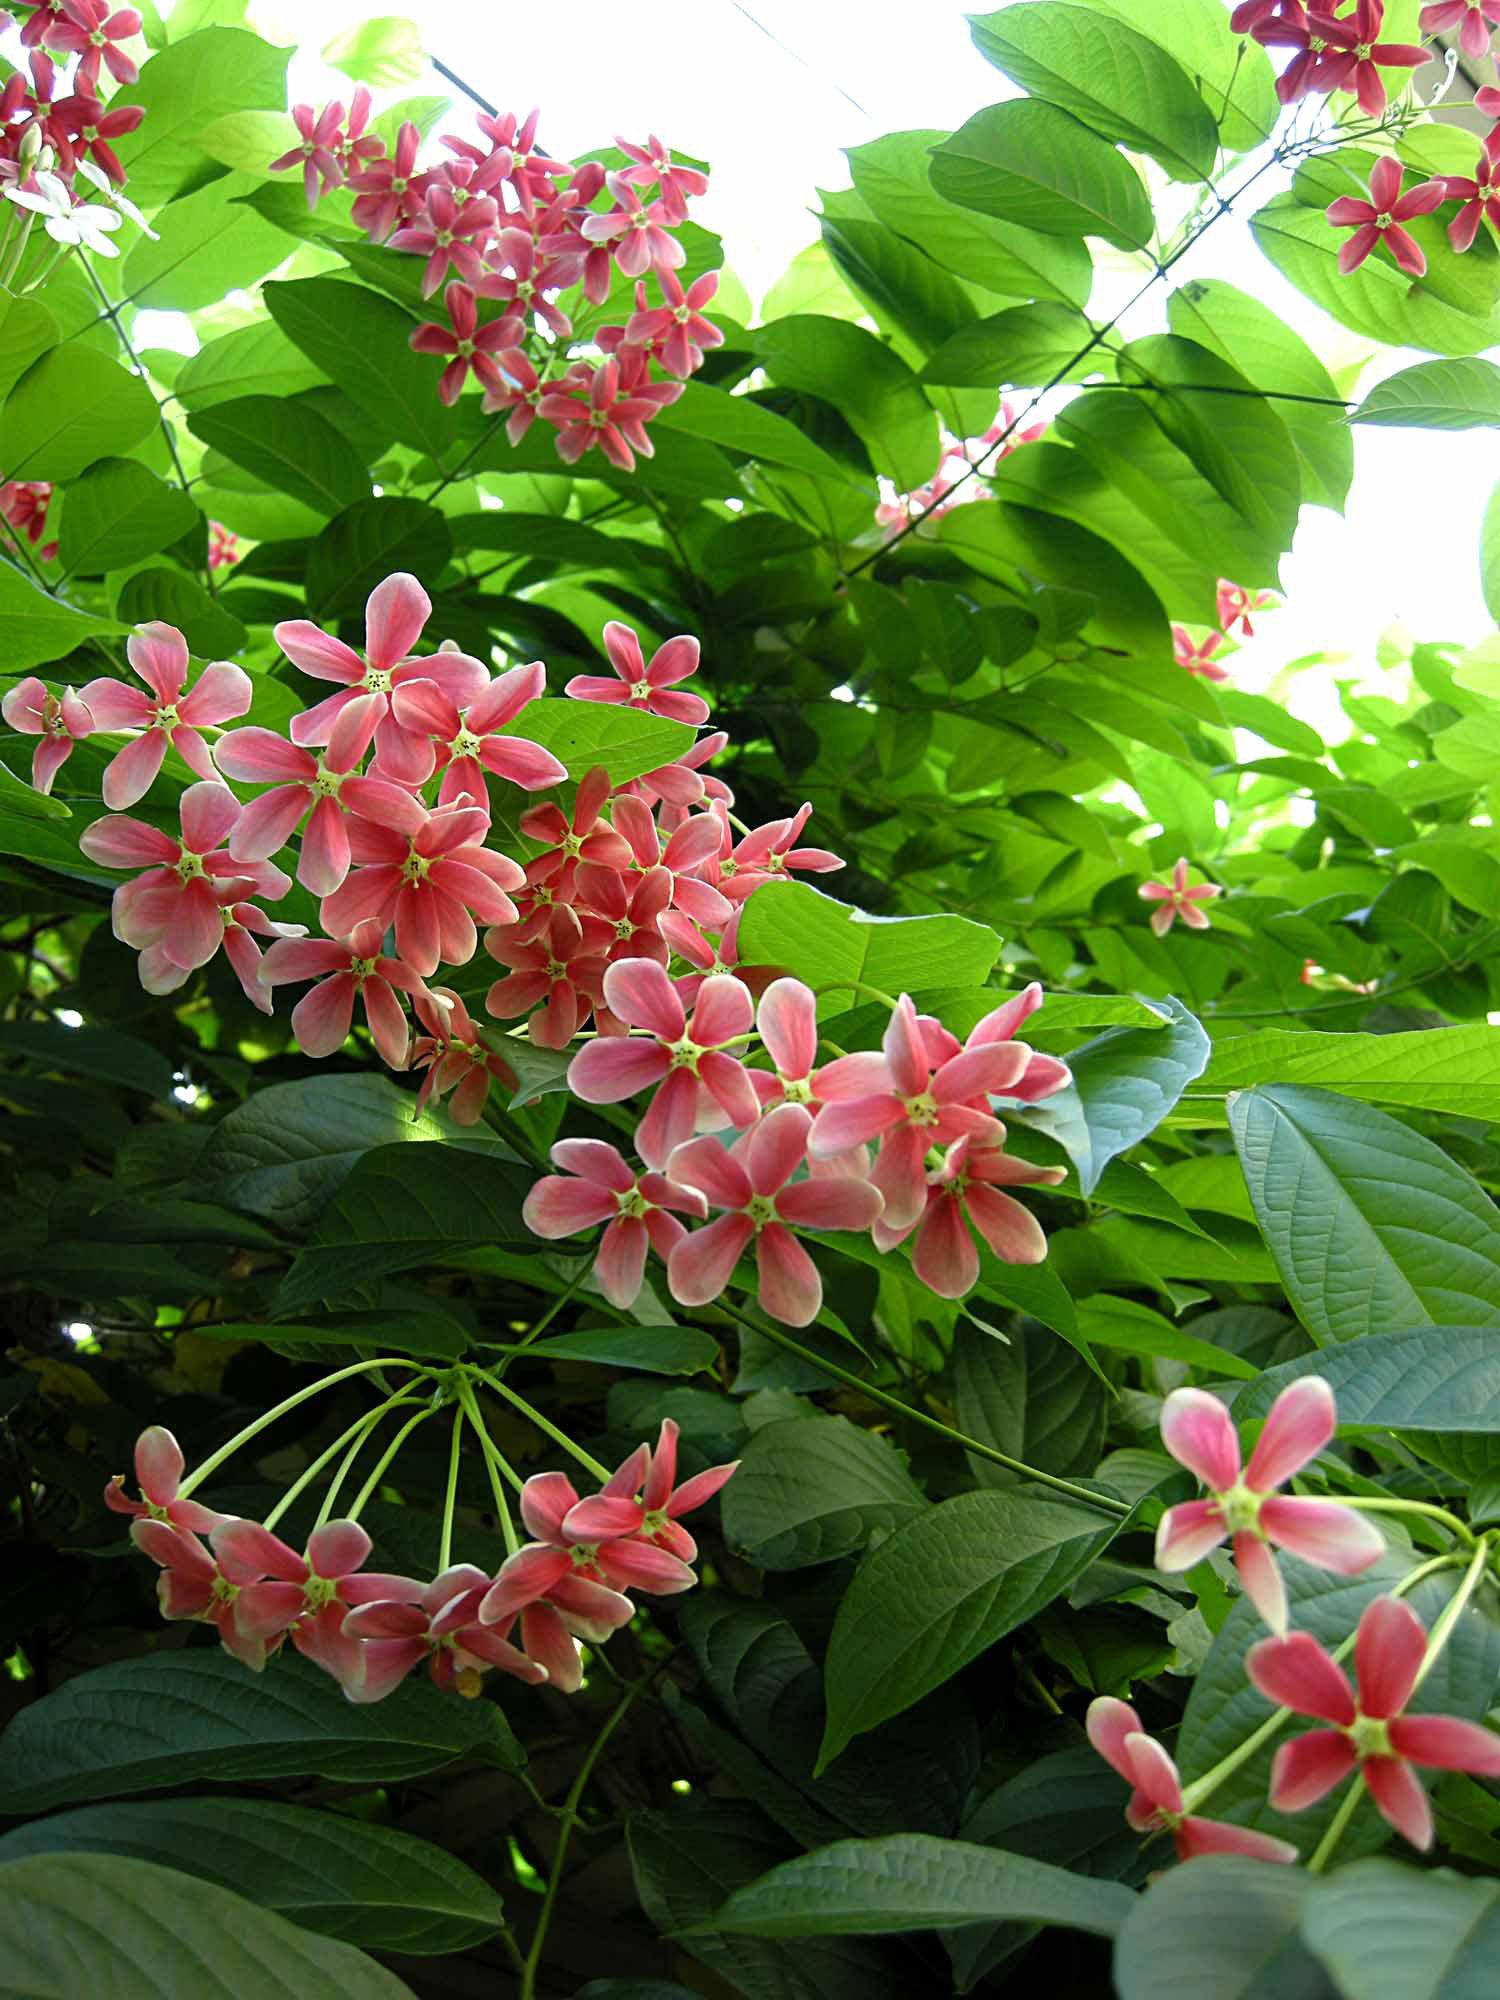 How To Keep Rangoon Creeper And Russelia Blooming